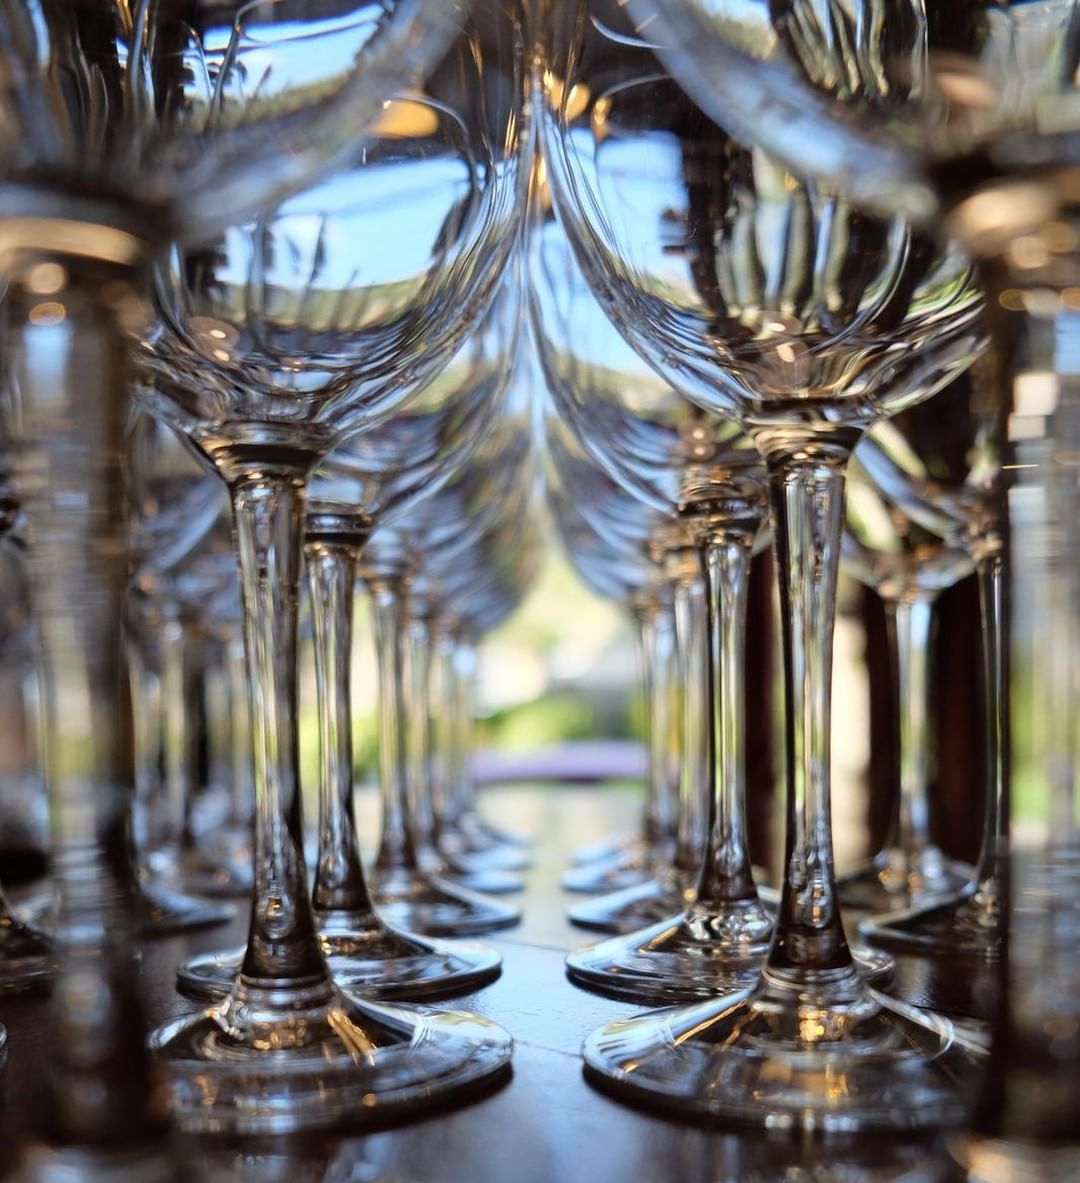 Glassware can make a big difference to how wines reveal themselves. Do you have a preferred shape?